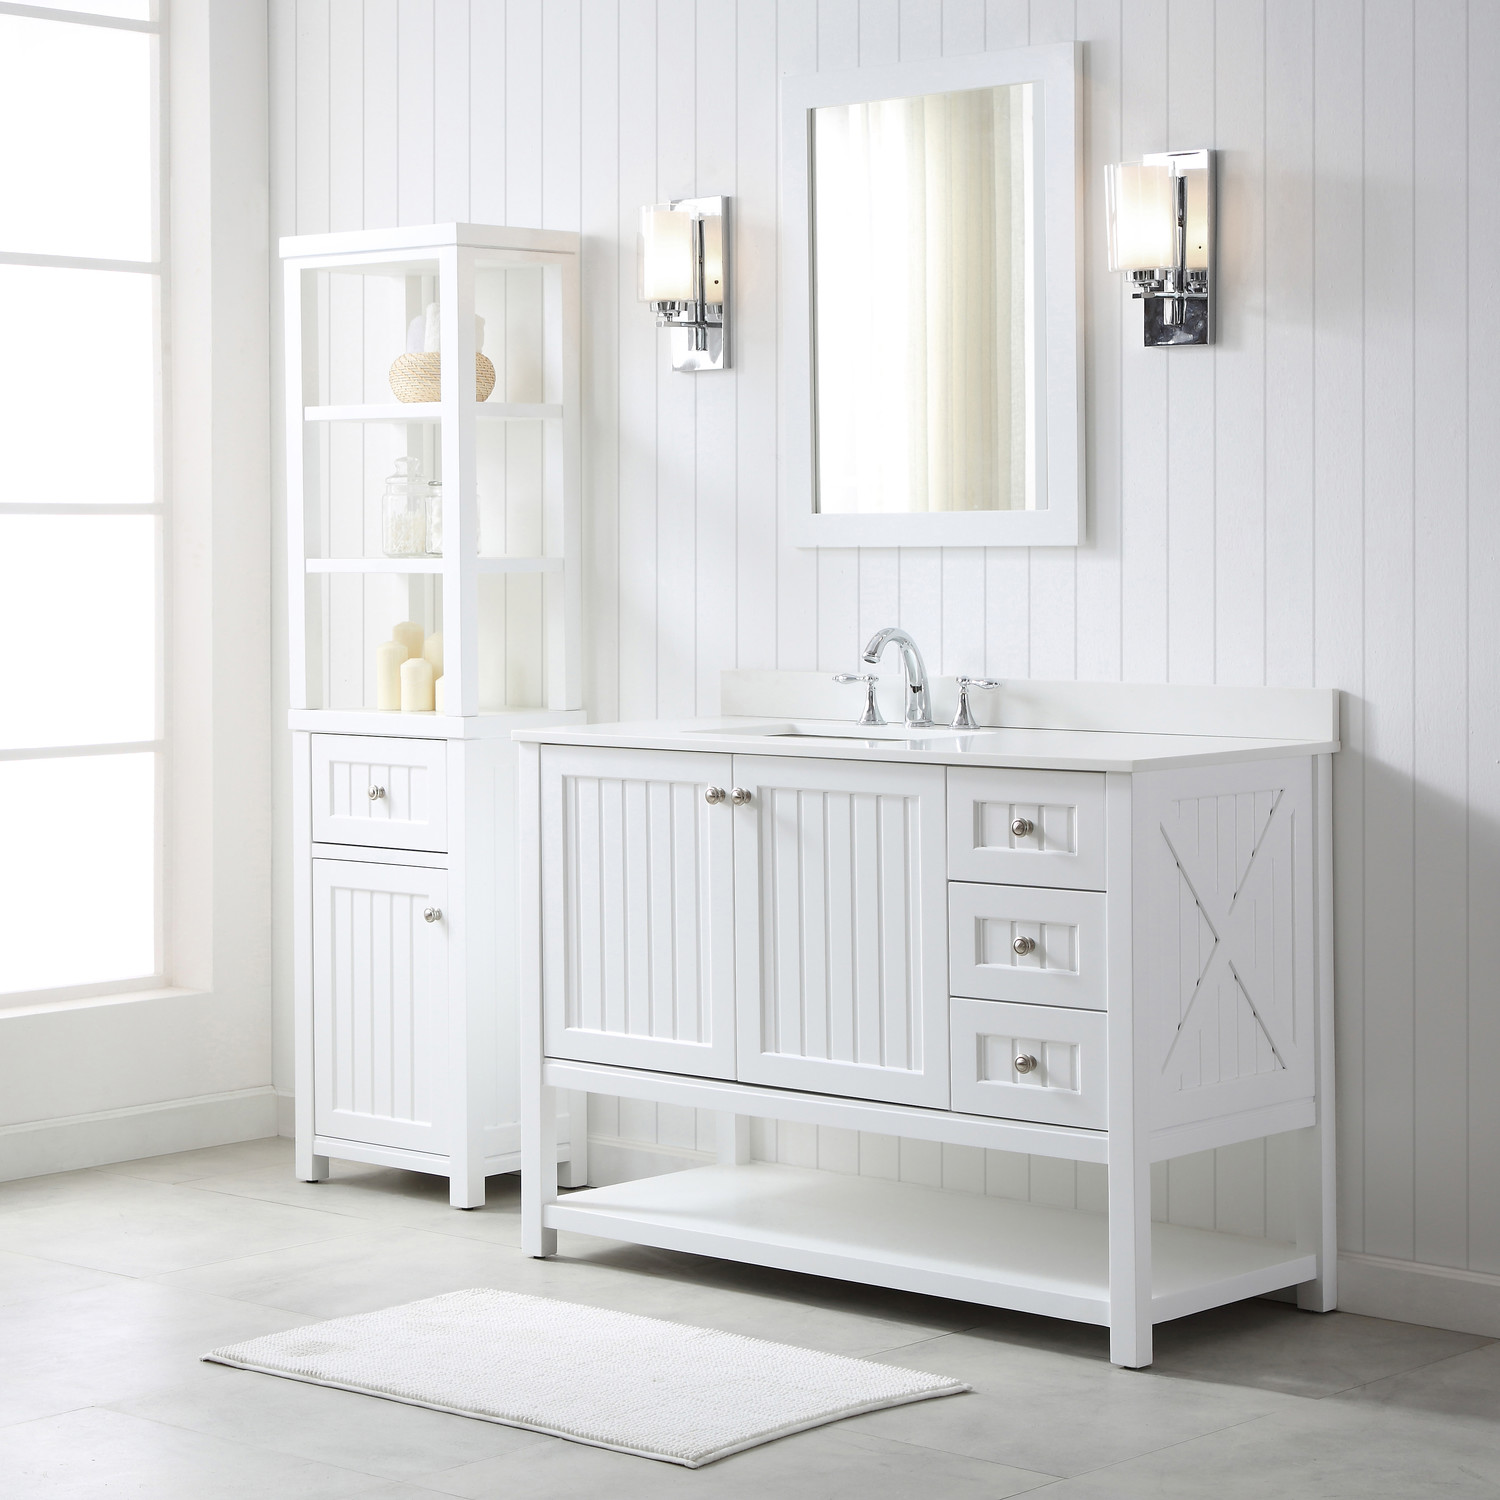 Video Martha Stewart Living Seal Harbor Bath Vanity Collection Martha Stewart